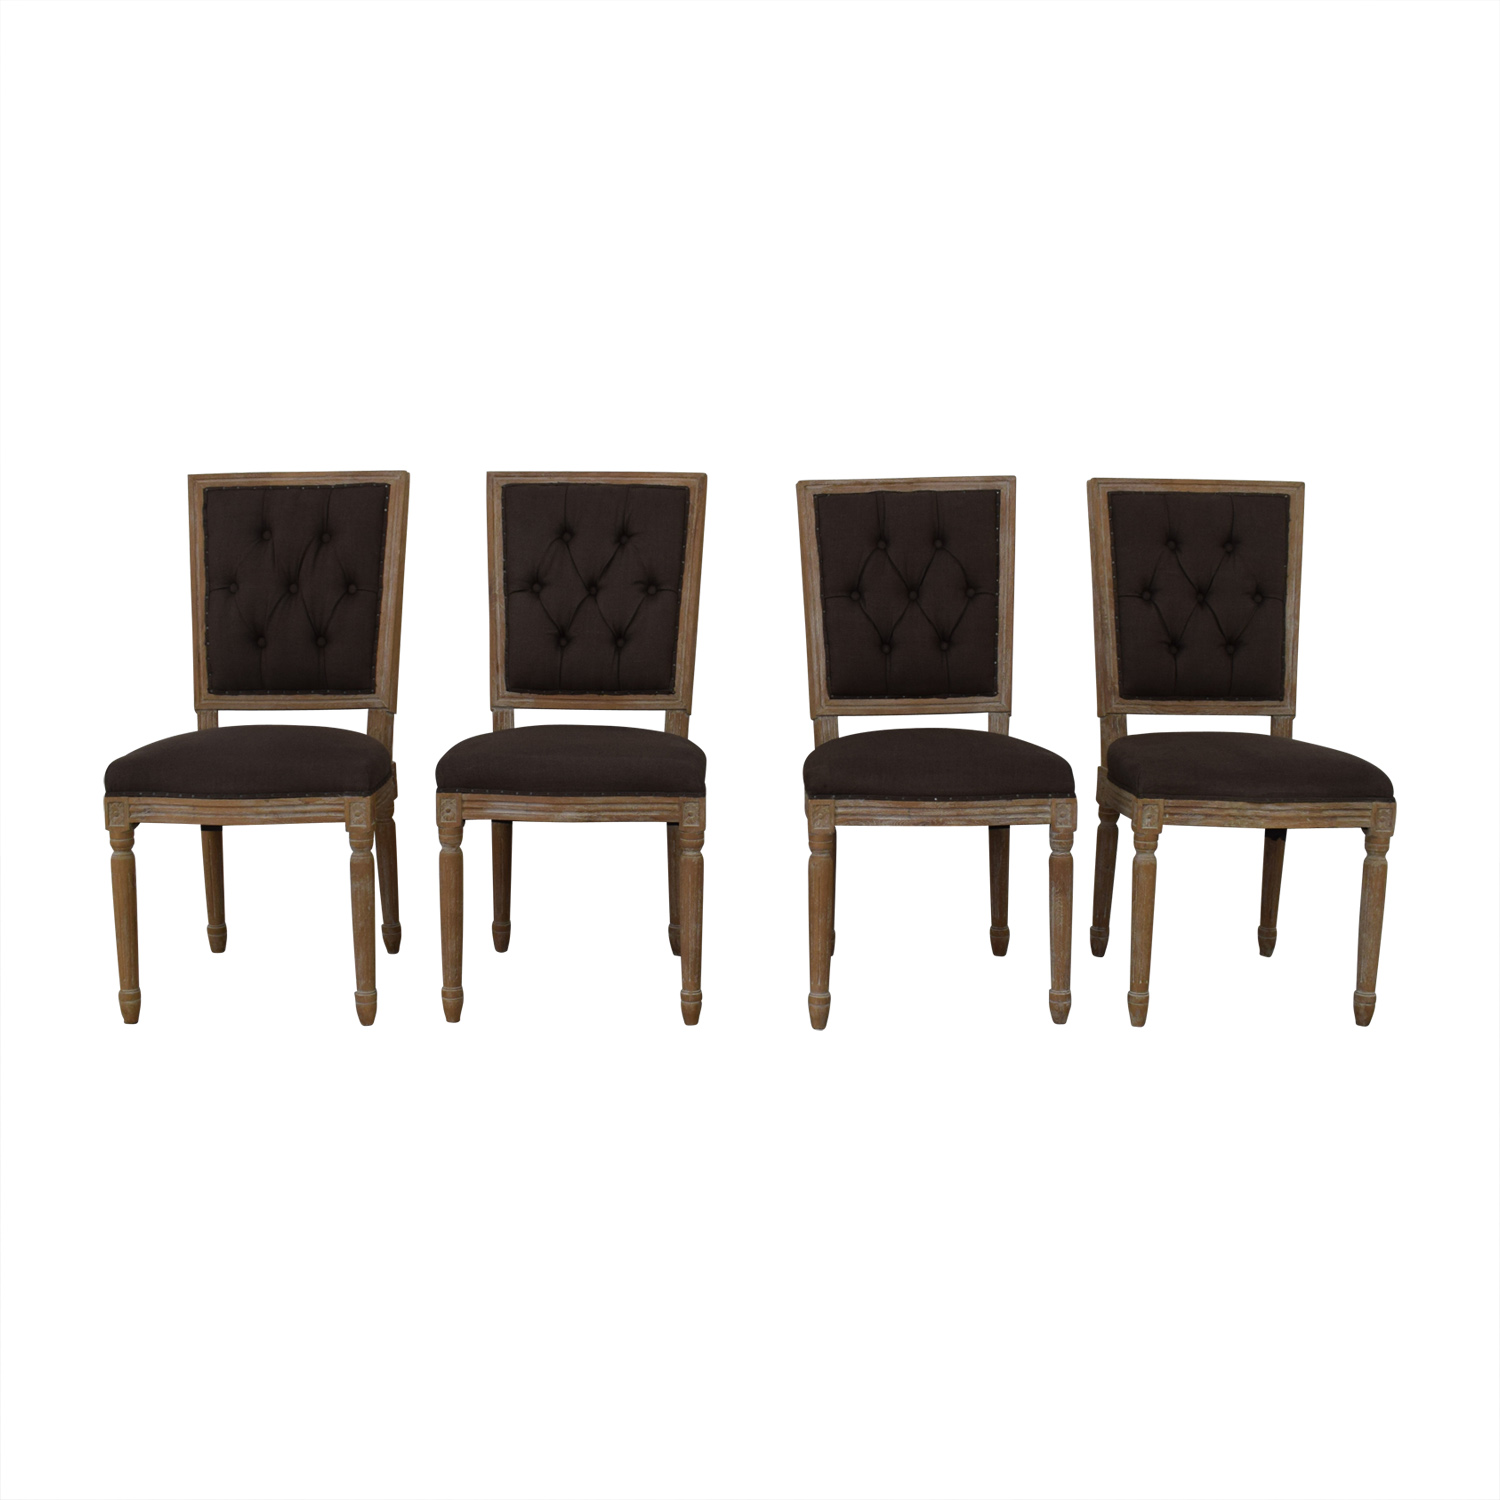 Orient Express Furniture Orient Express Furniture Elton Dining Chairs coupon